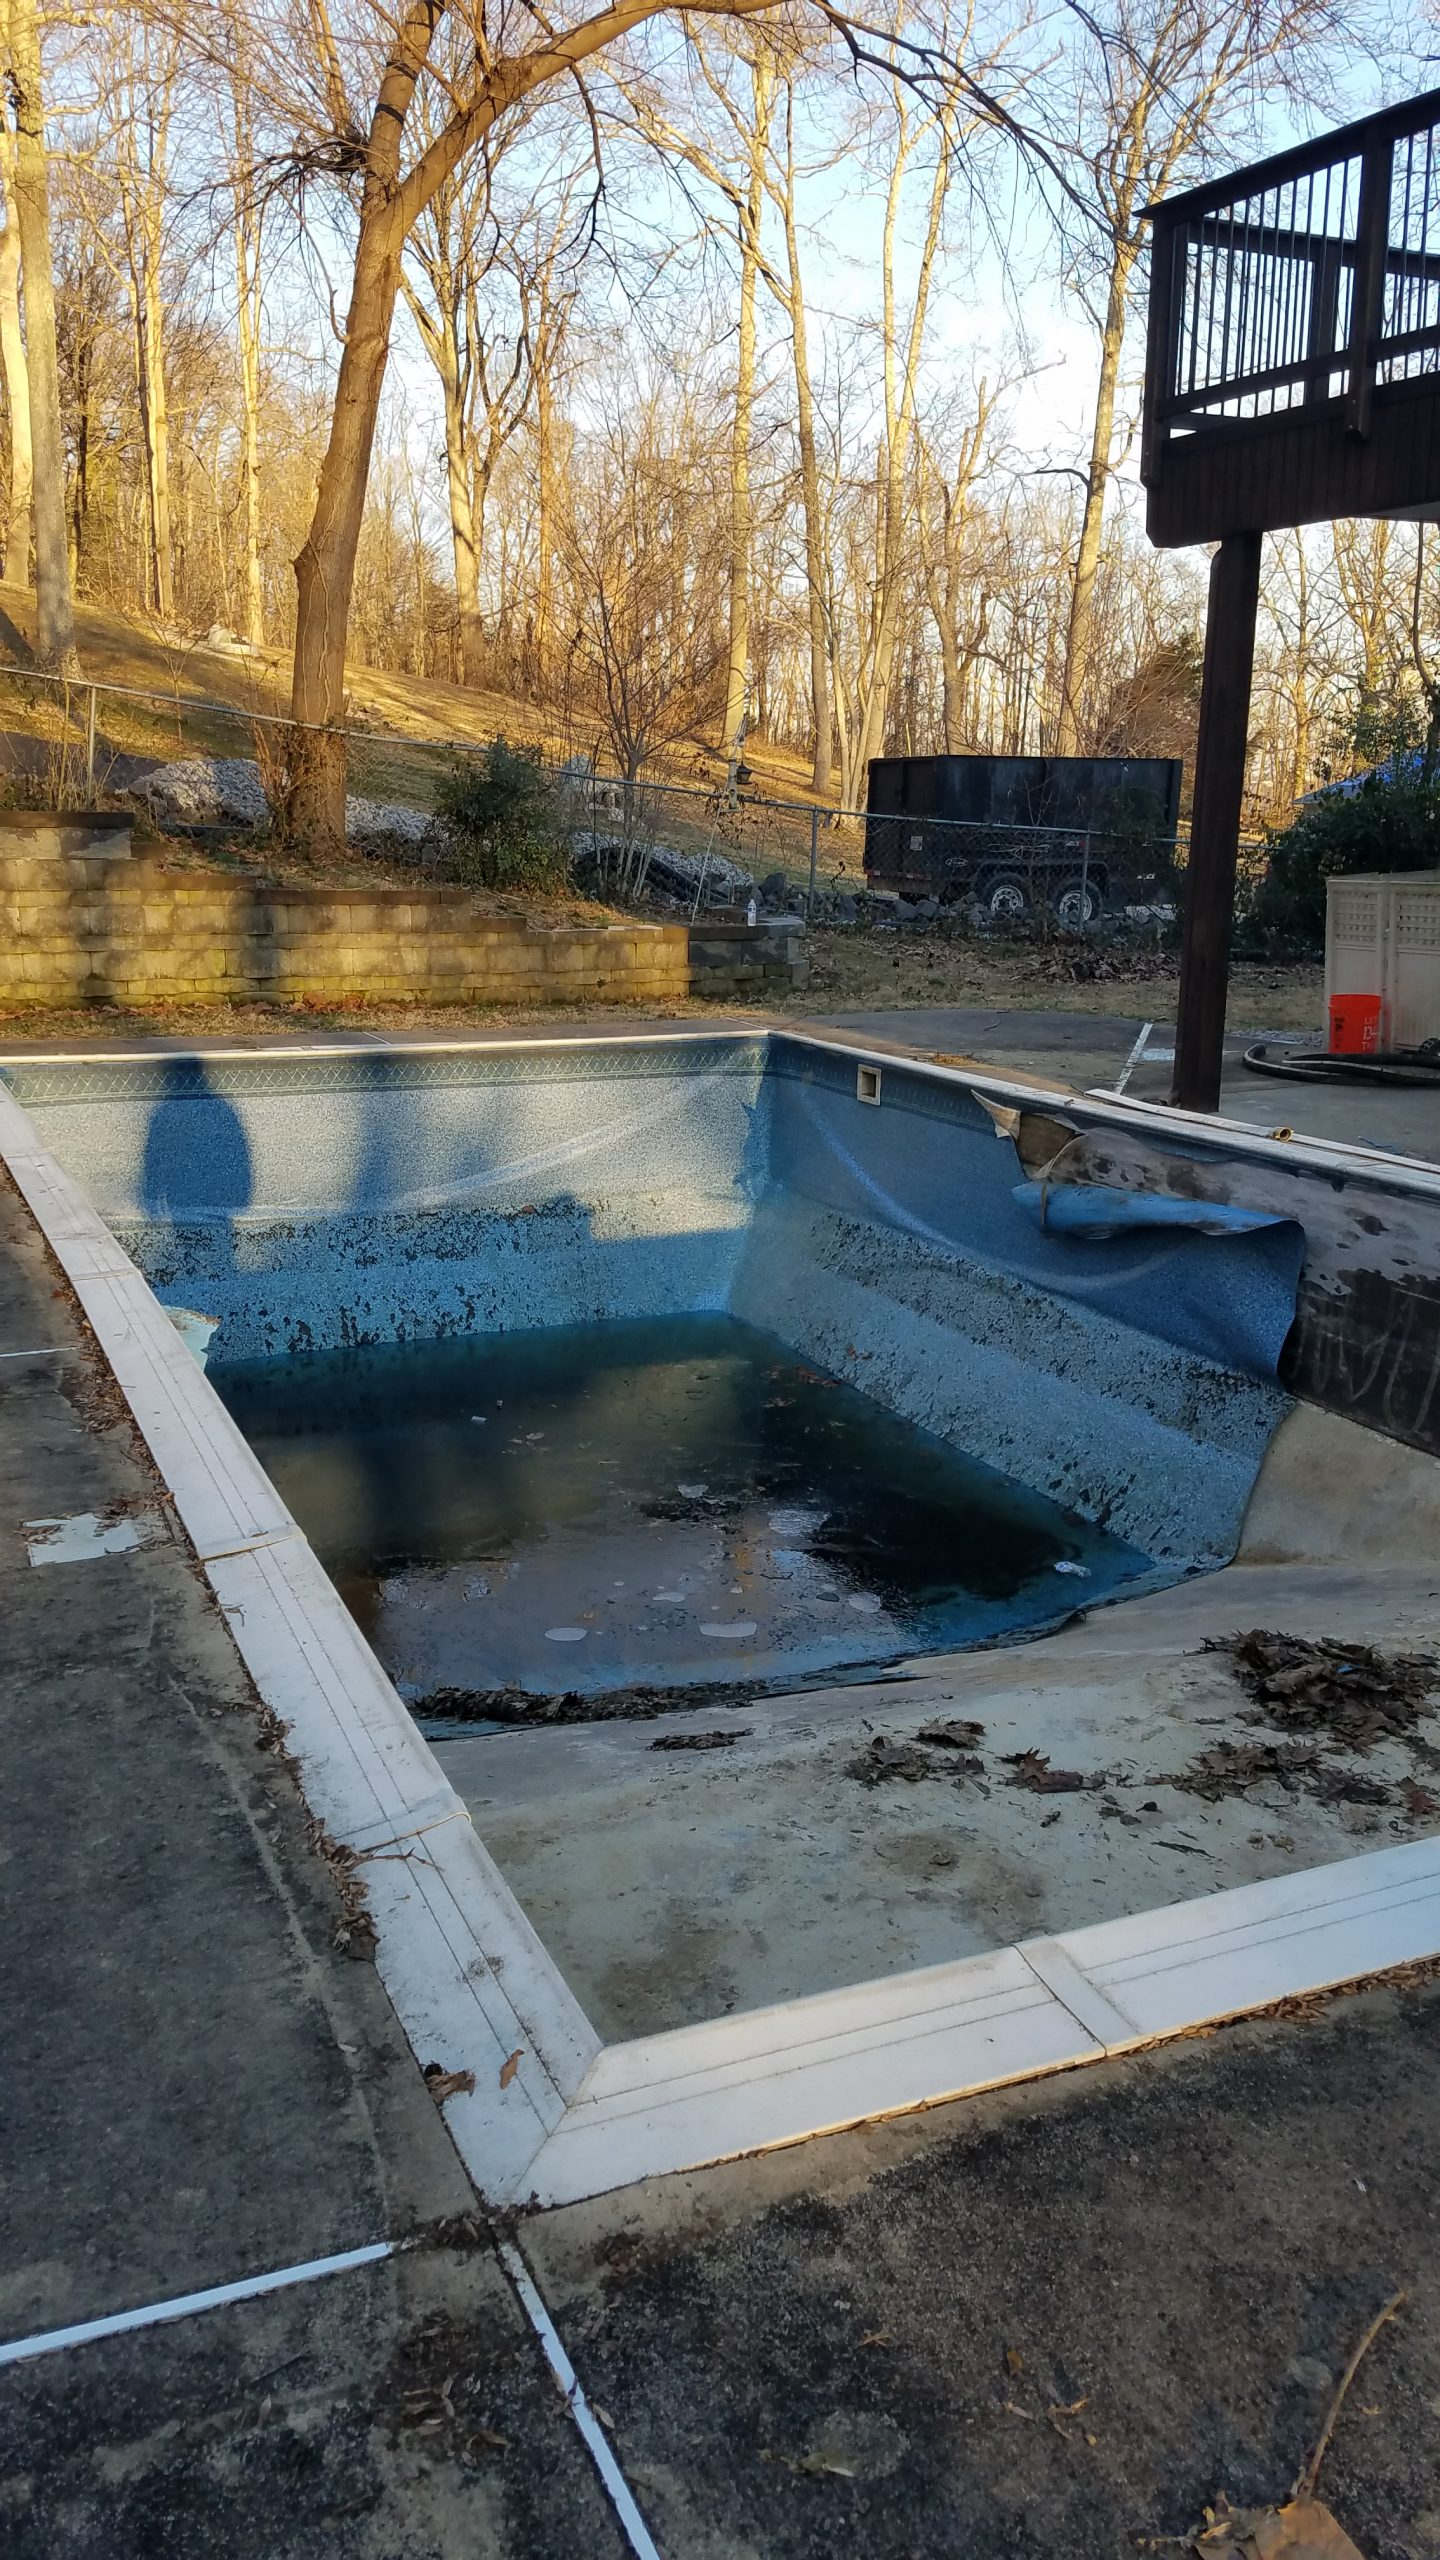 Pool in Woodbridge, Virginia in obvious disrepair